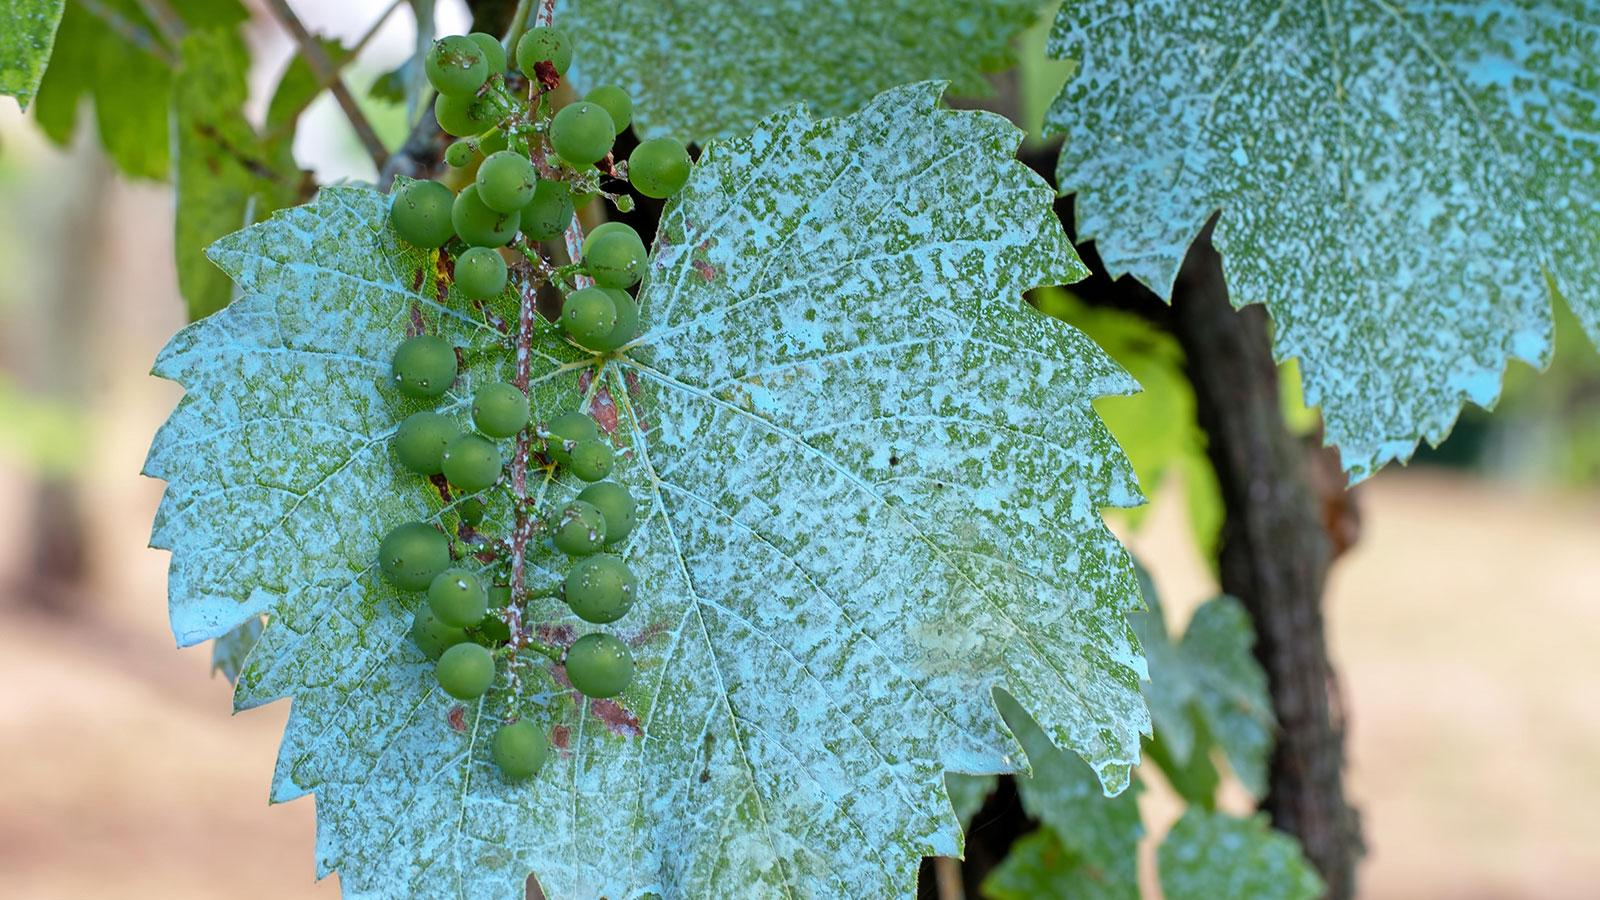 Is Copper Safe for Wine?